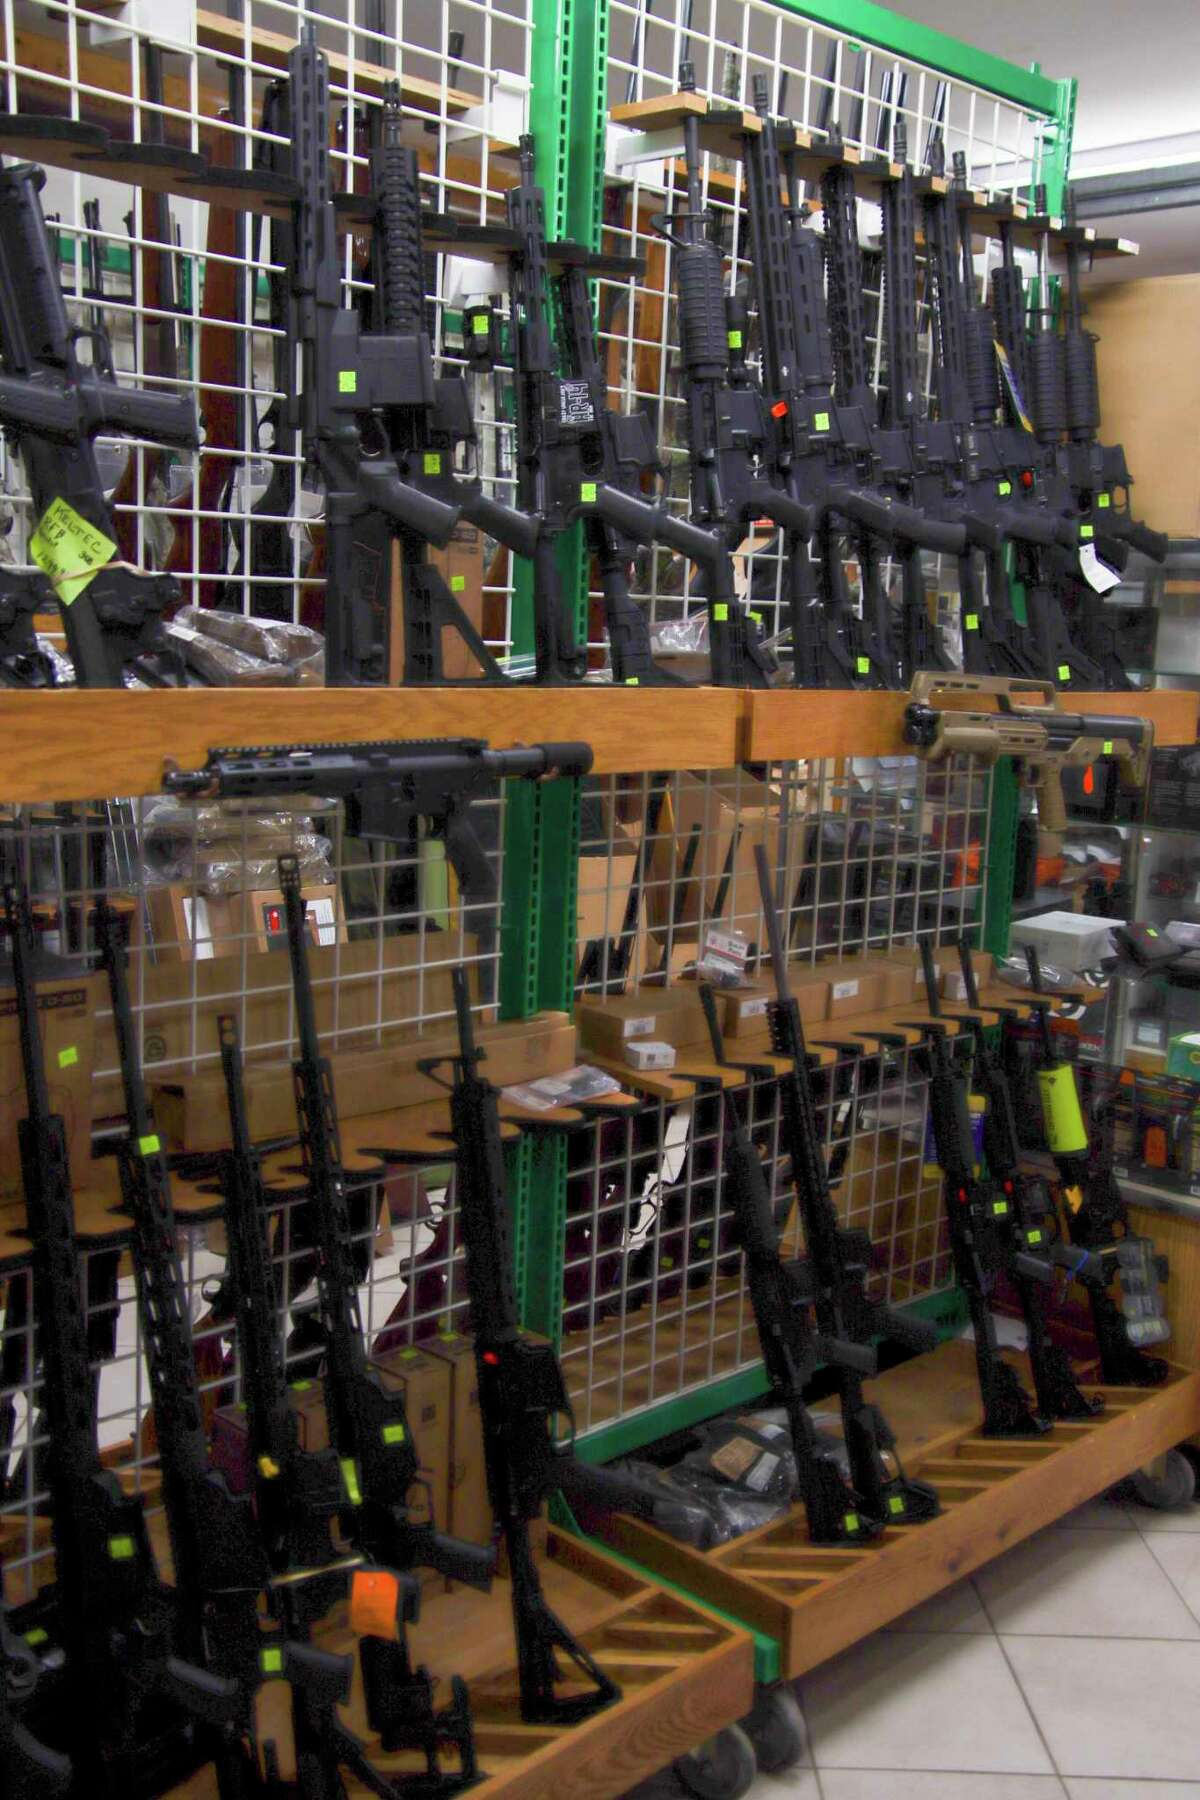 Randy Brown said despite his inventory position, there is a shortage of firearms and ammo across the country. (Scott Nunn/Huron Daily Tribune)